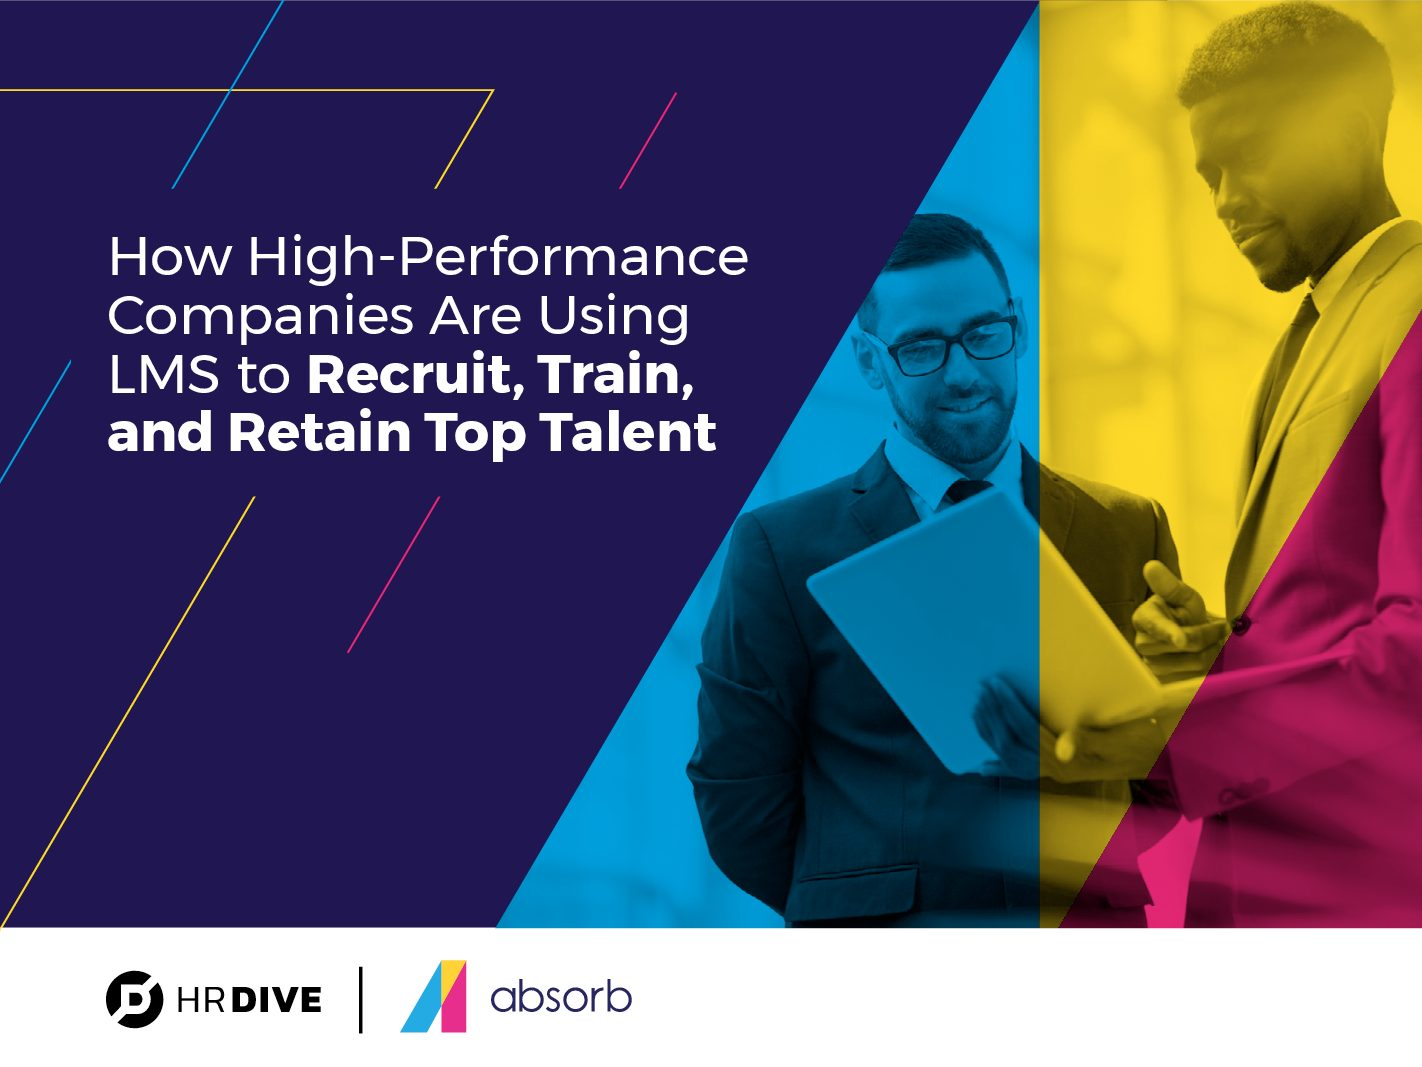 How High-Performance Companies Are Using LMS to Recruit, Train, and Retain Top Talent